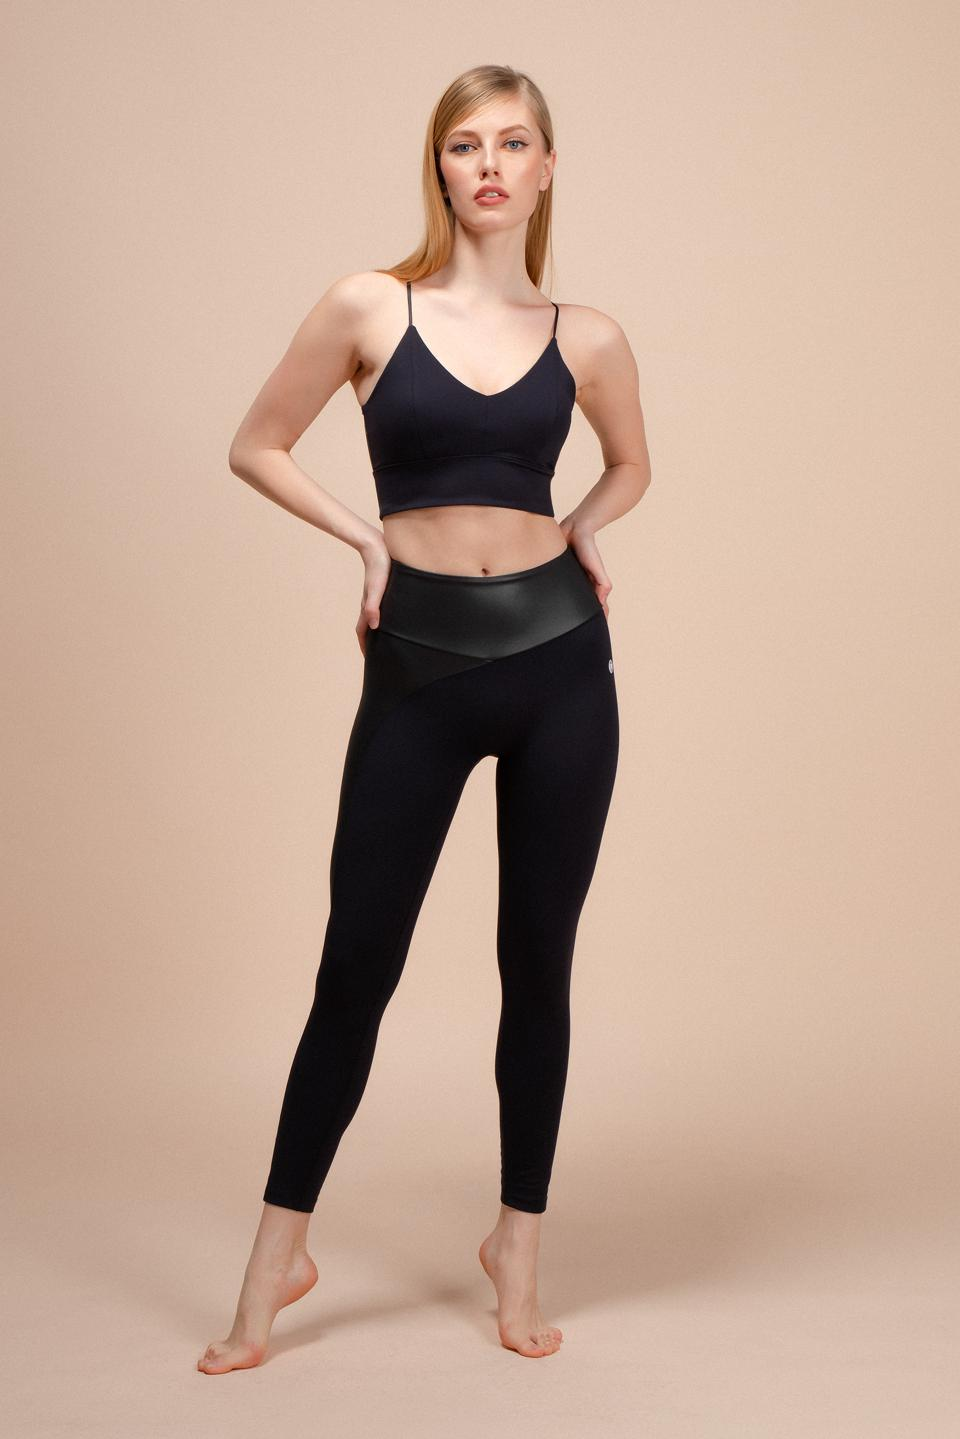 ENVT is dedicated to creating design-focused, premium athleisure for the modern woman who is always on the go, while valuing a healthy balance between career and wellnes